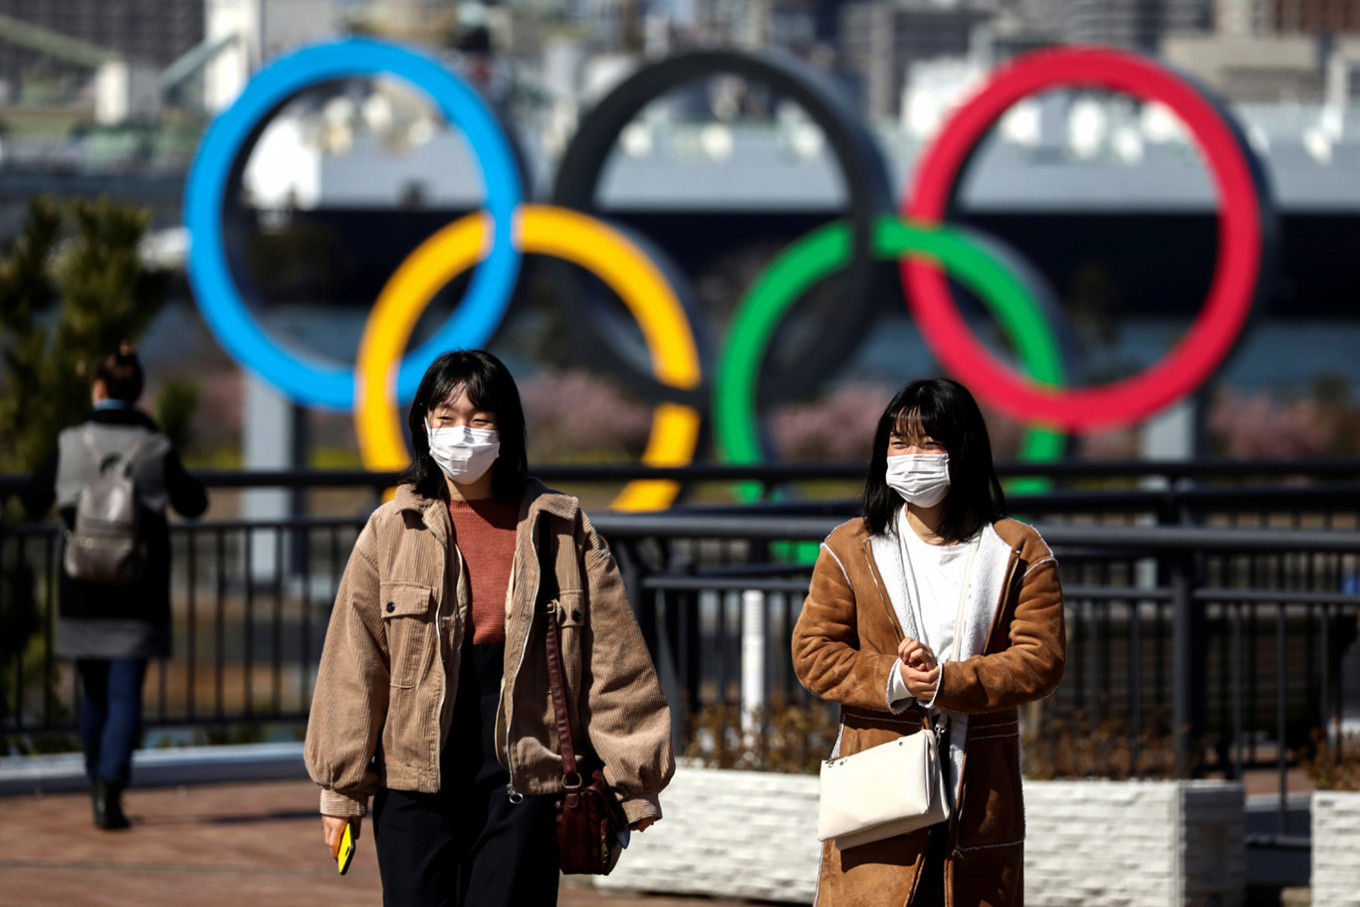 International Olympic Committee official disagrees COVID-19 vaccine needed for Olympics